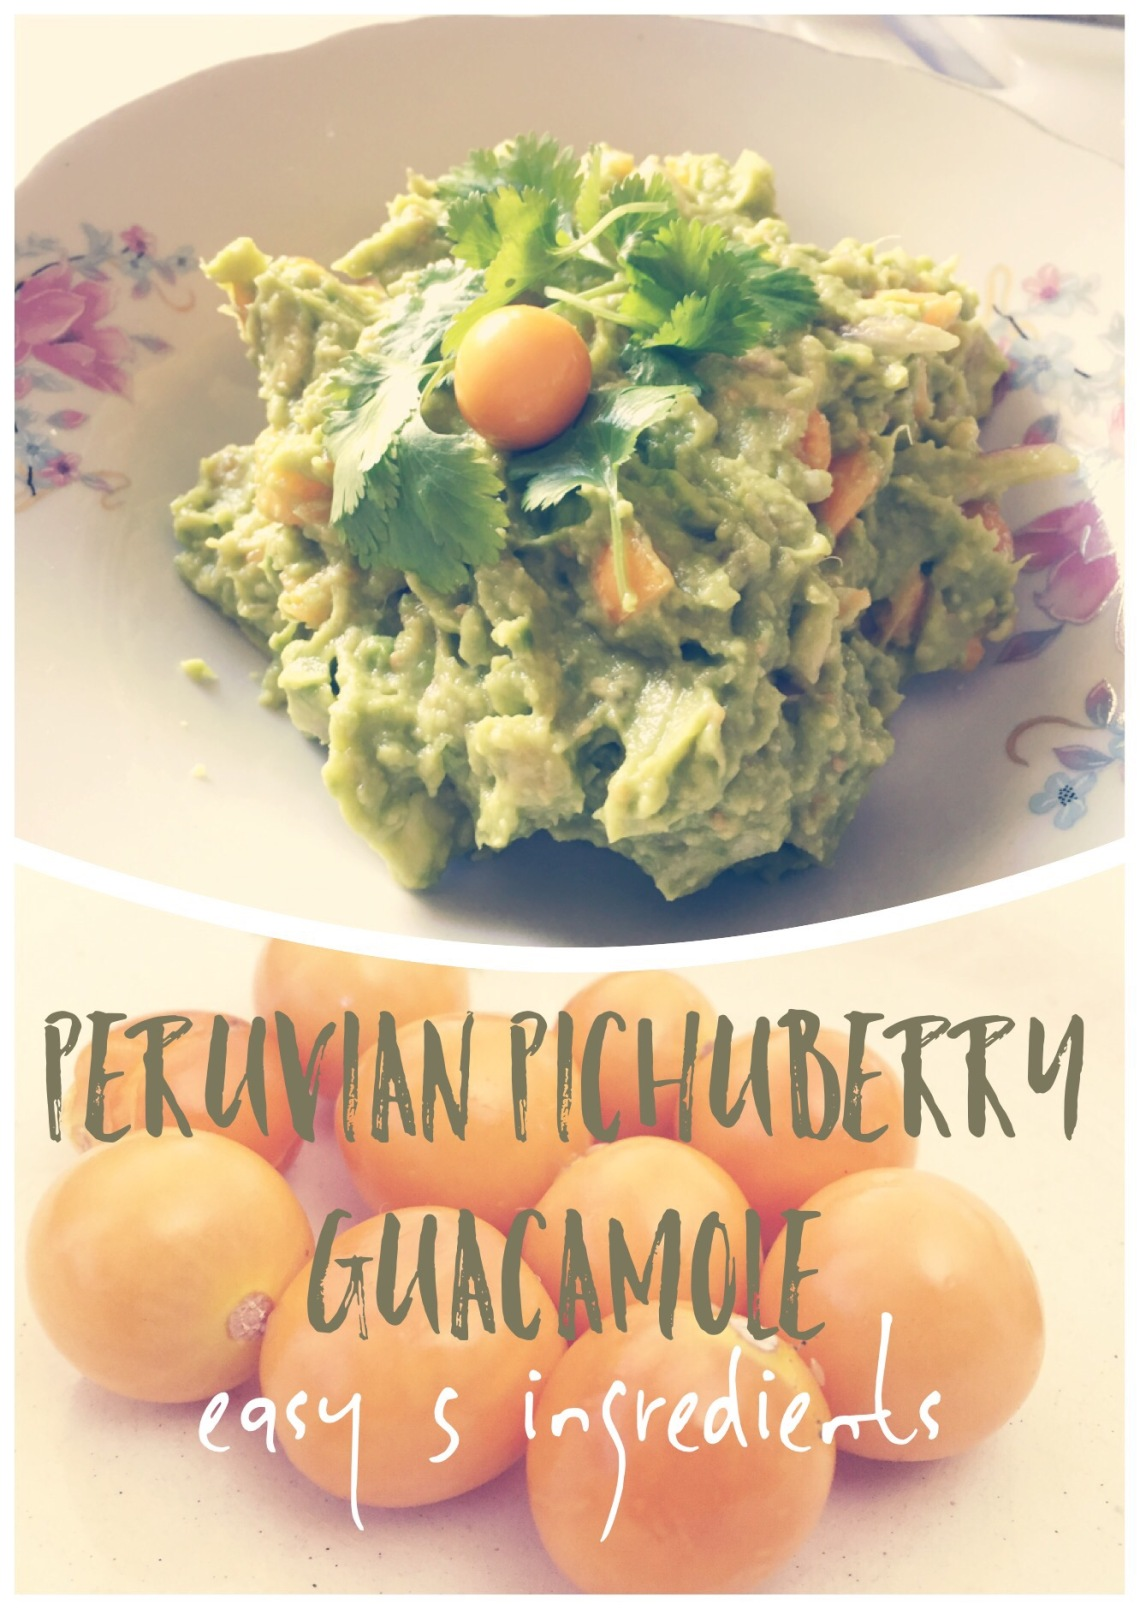 Peruvian Pichuberry Guacamole easy recipe